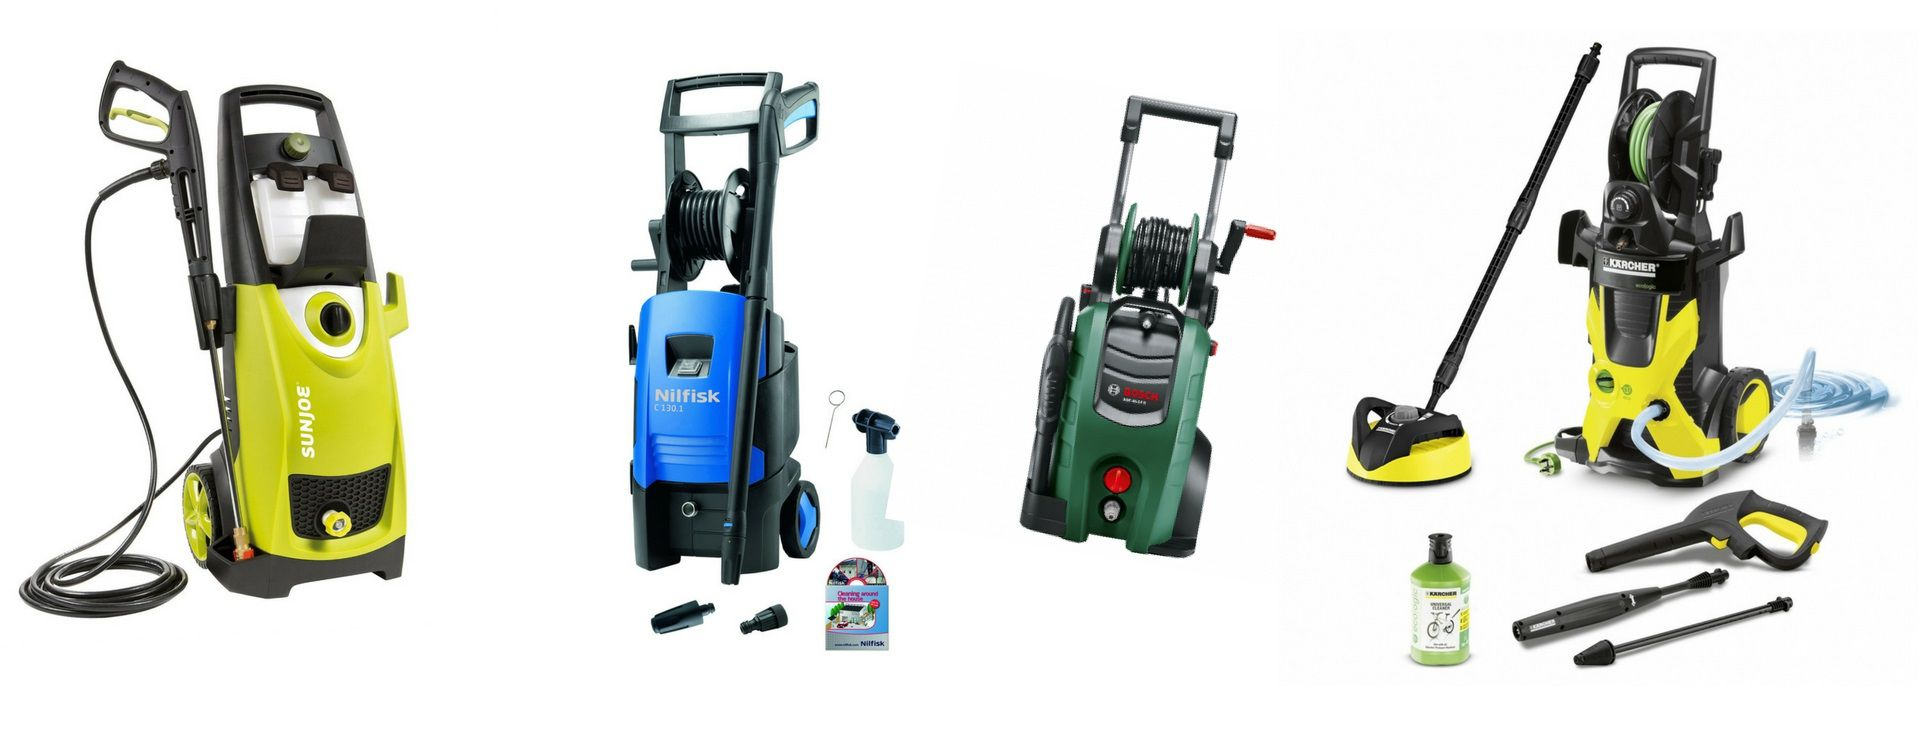 What Is An Electric Pressure Washer